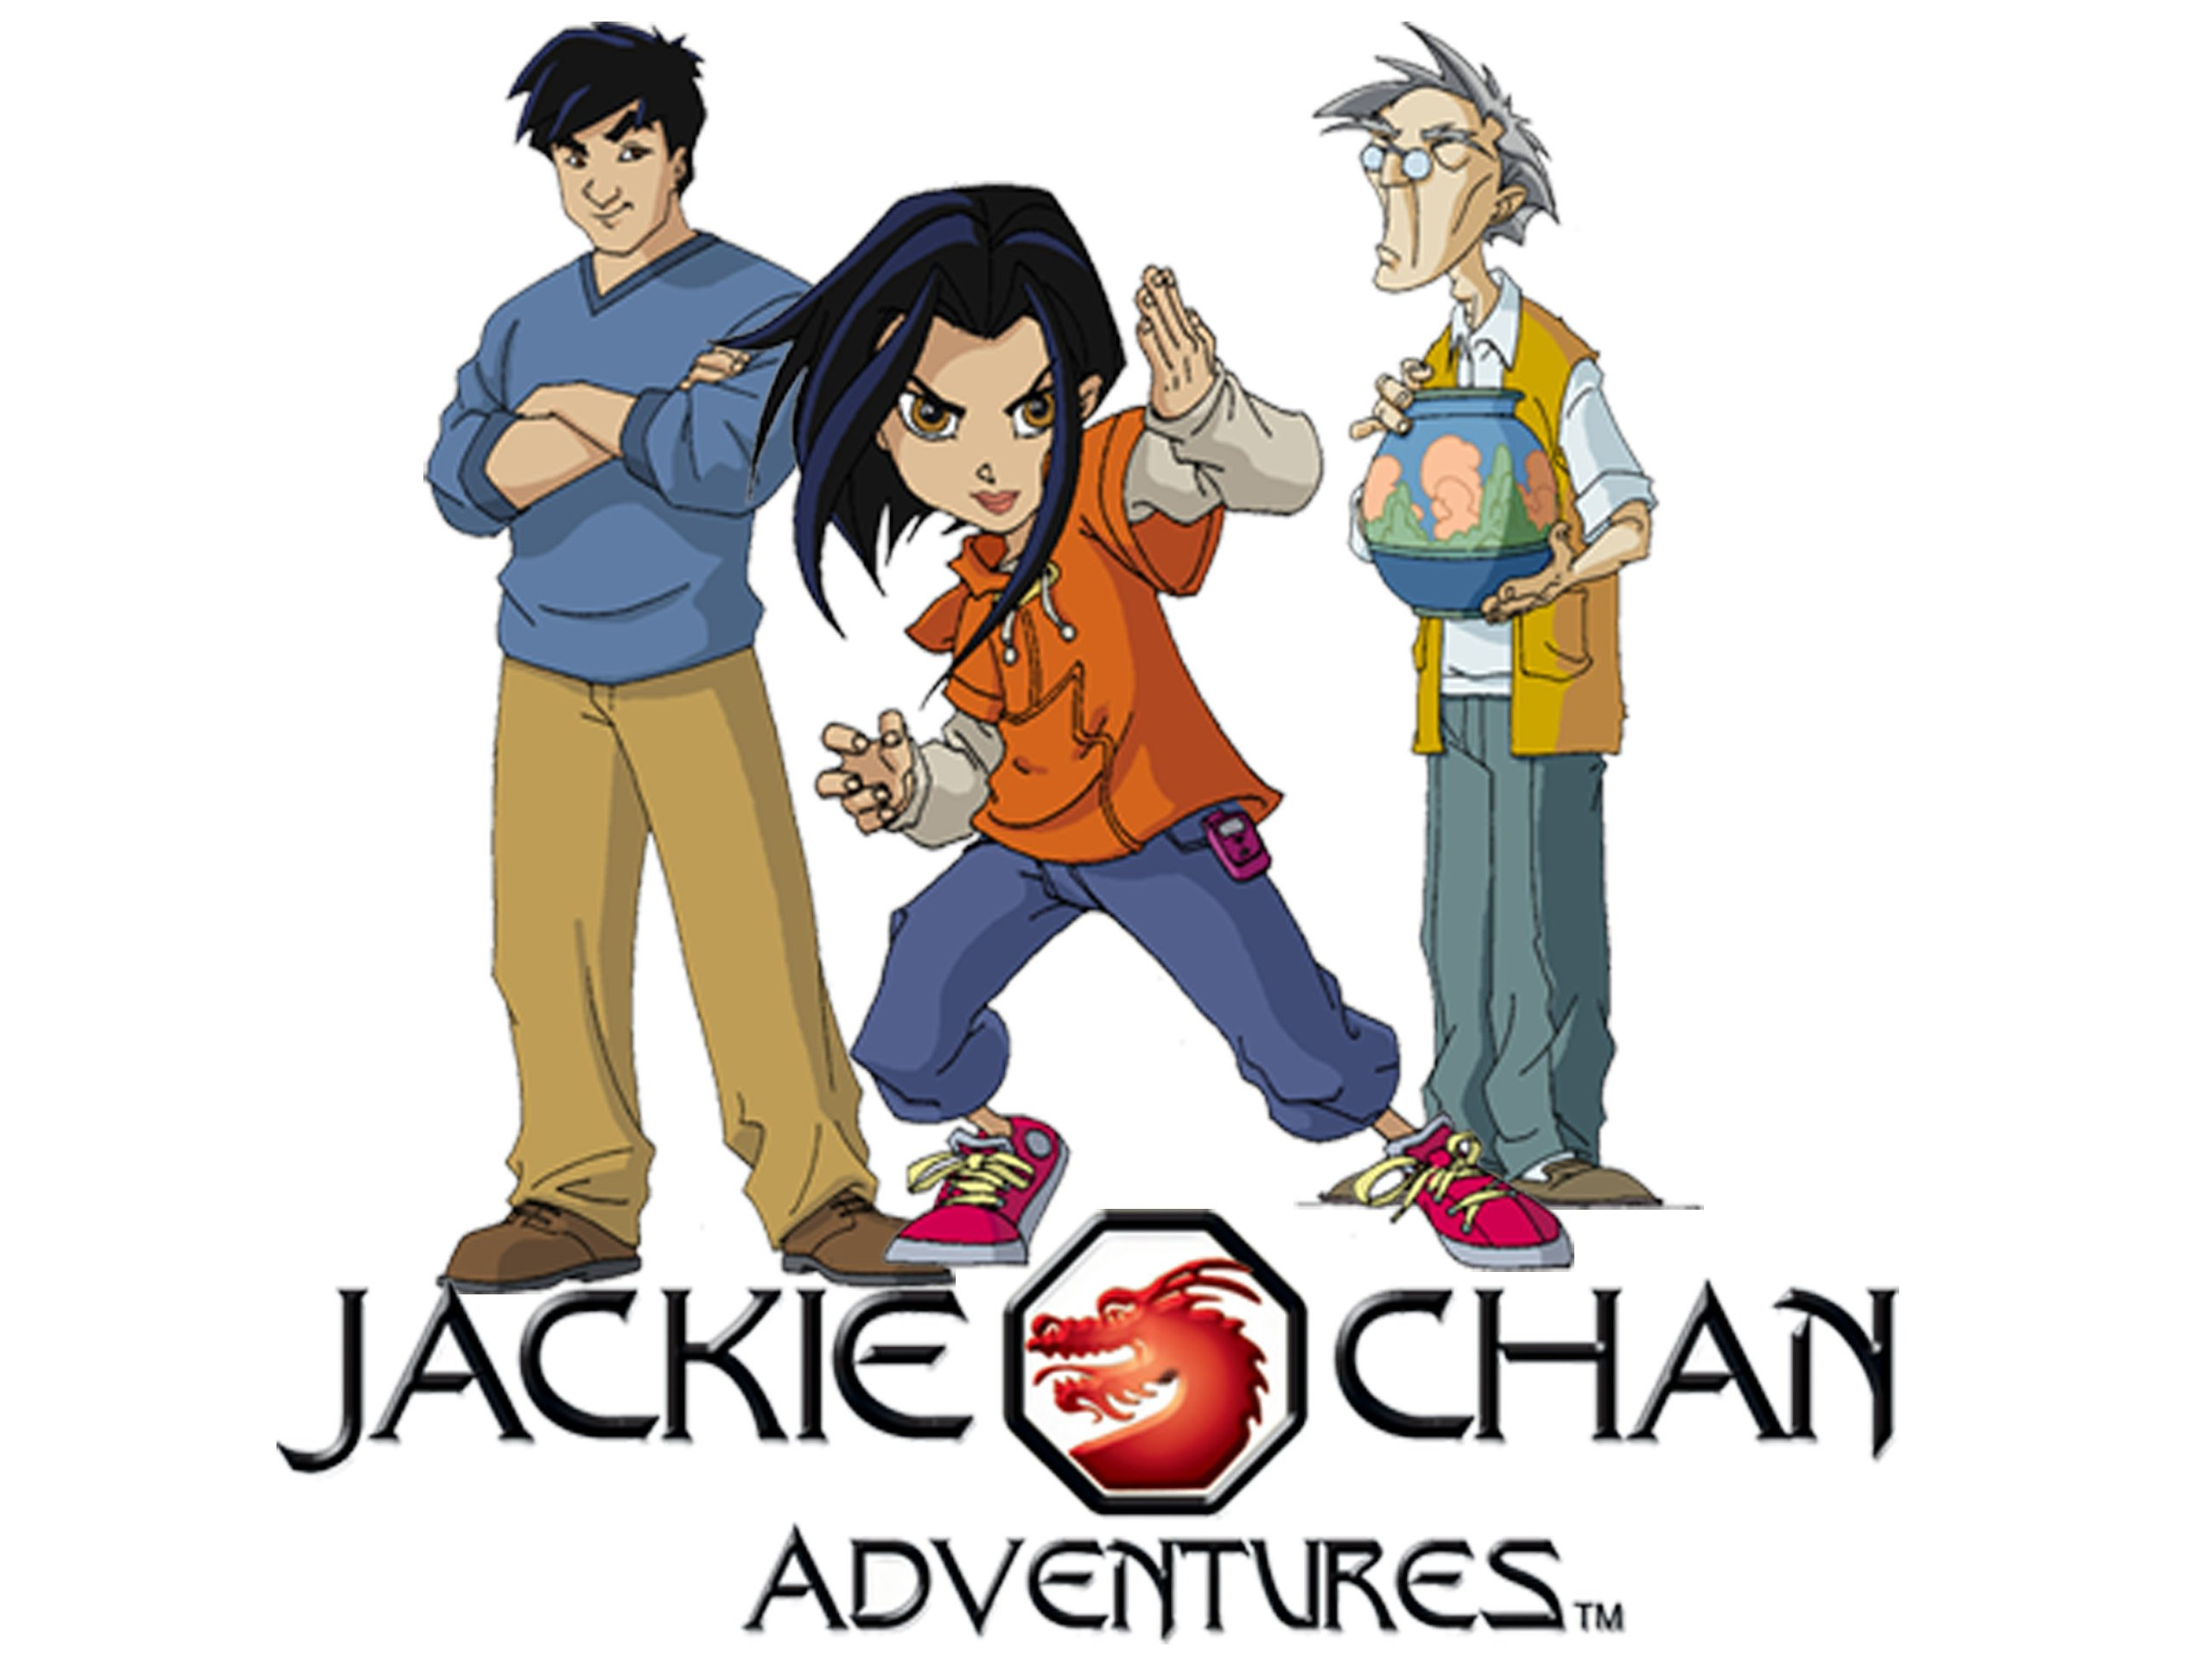 Amazon clipartlook.com: Jackie Chan Adventures Season 1: Christopher Berkeley, Michael  Chang, Andy Thom, Seung Kim, Phil Weinstein, Jackie Chan, Willie Chan, ClipartLook.com